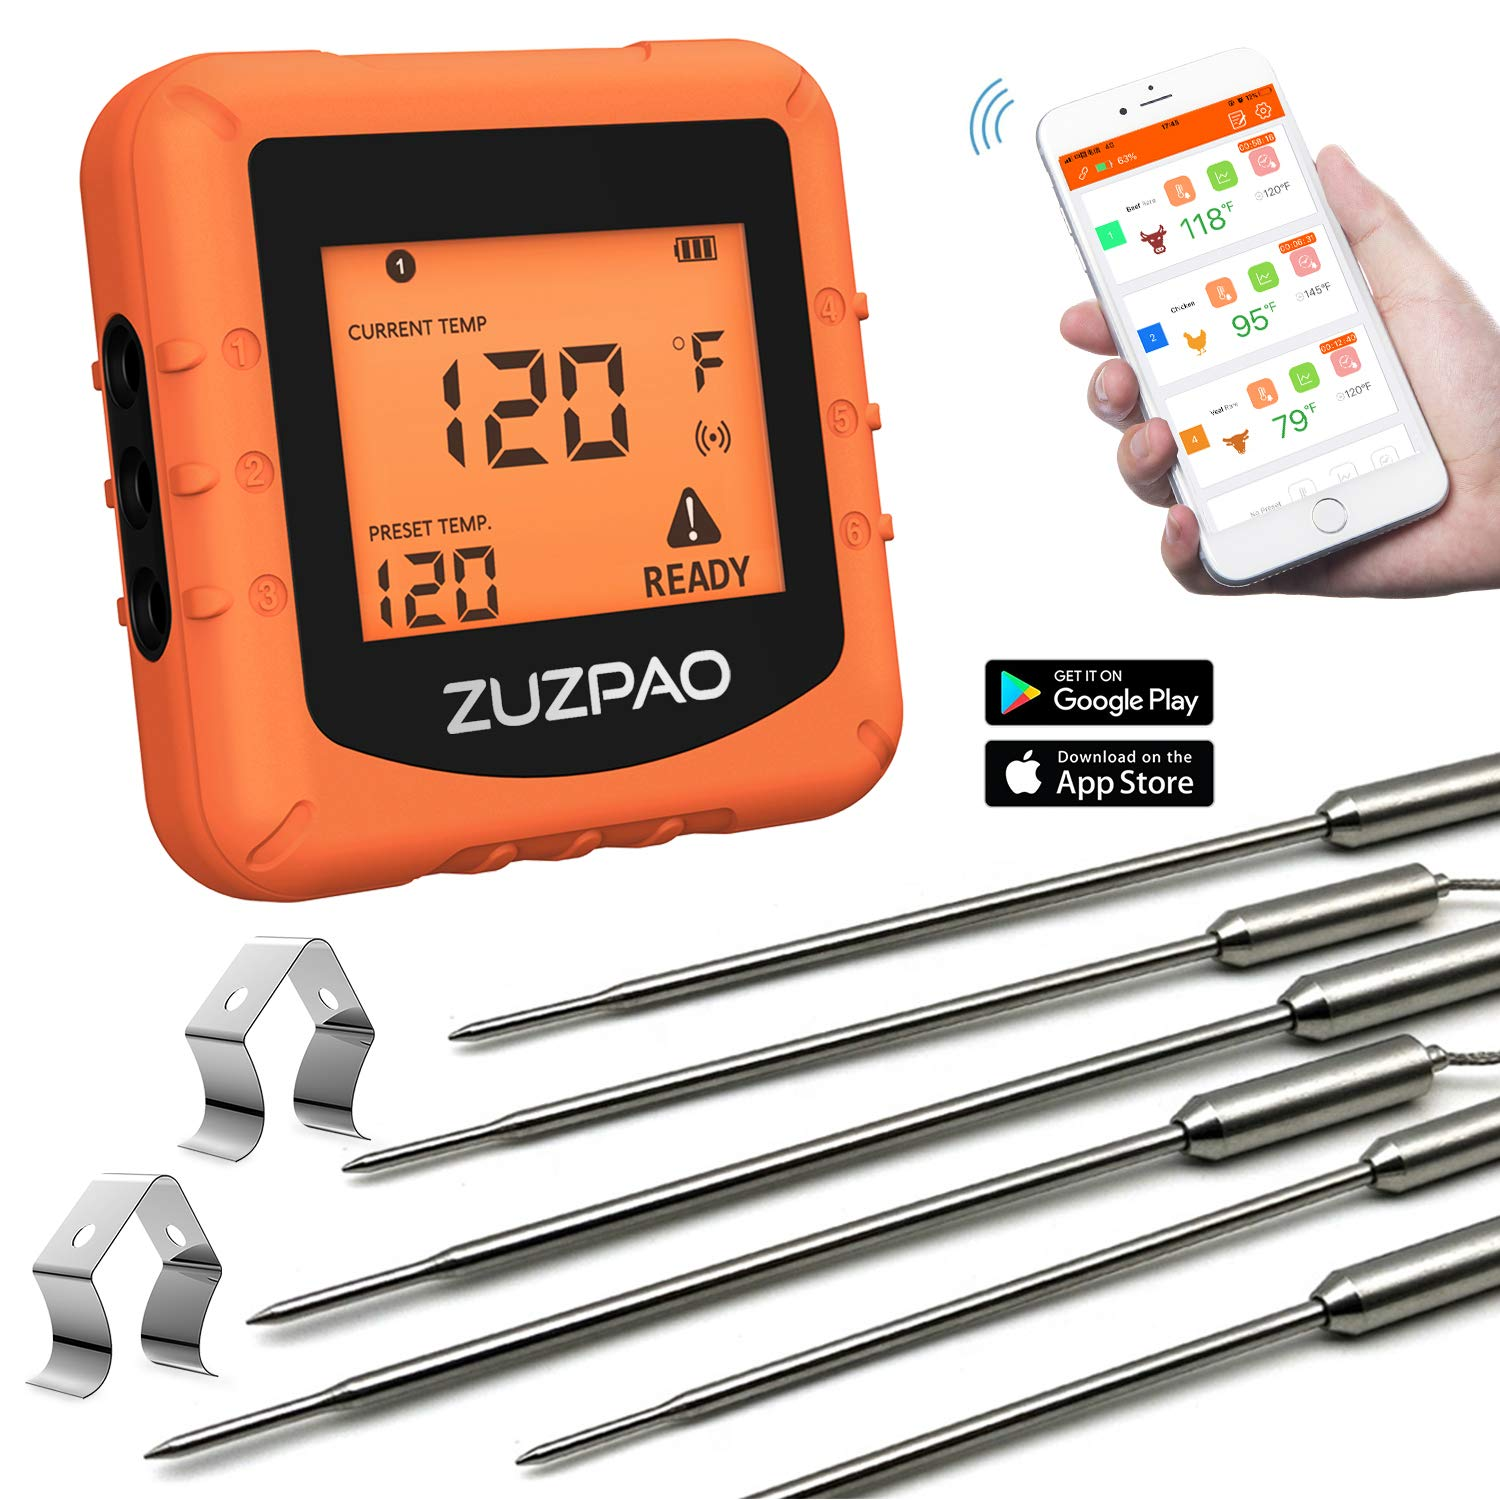 Meat Thermometer for Grilling, Zuzpao Wireless Digital BBQ Smoker Grill Remote Thermometer 6 Stainless Steel Probes and Smart APP Temperature Setting, Alarm Monitor Kitchen Cooking Thermometer by ZUZPAO